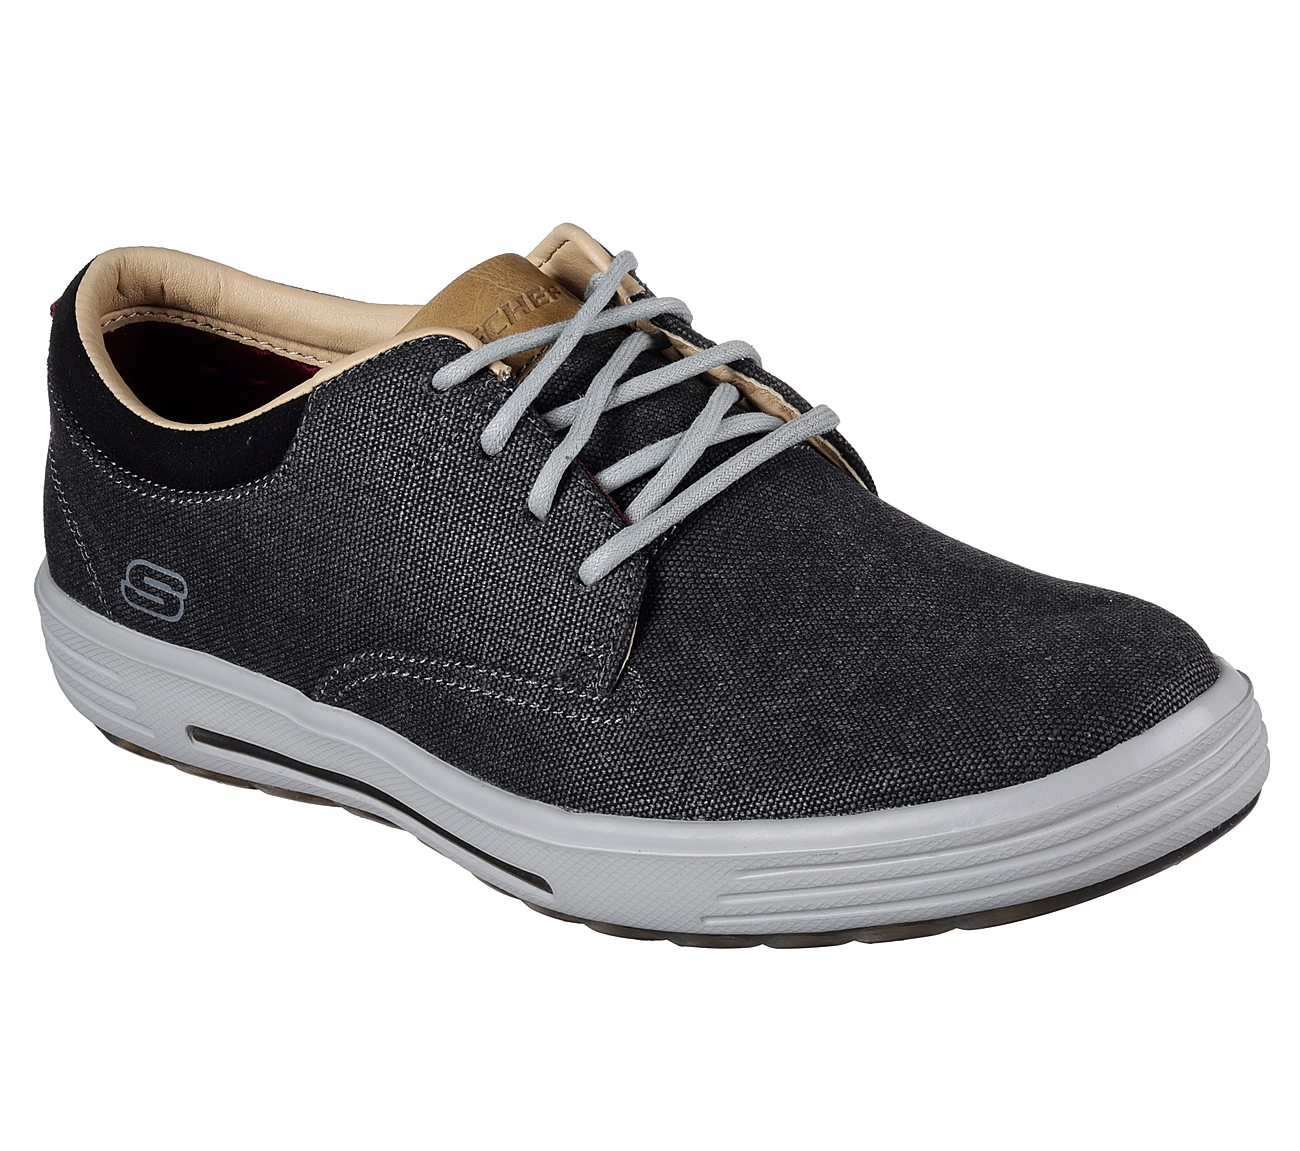 5272bd02836 Buy SKECHERS Skech-Air  Porter - Zevelo Skech-Air Shoes only  75.00